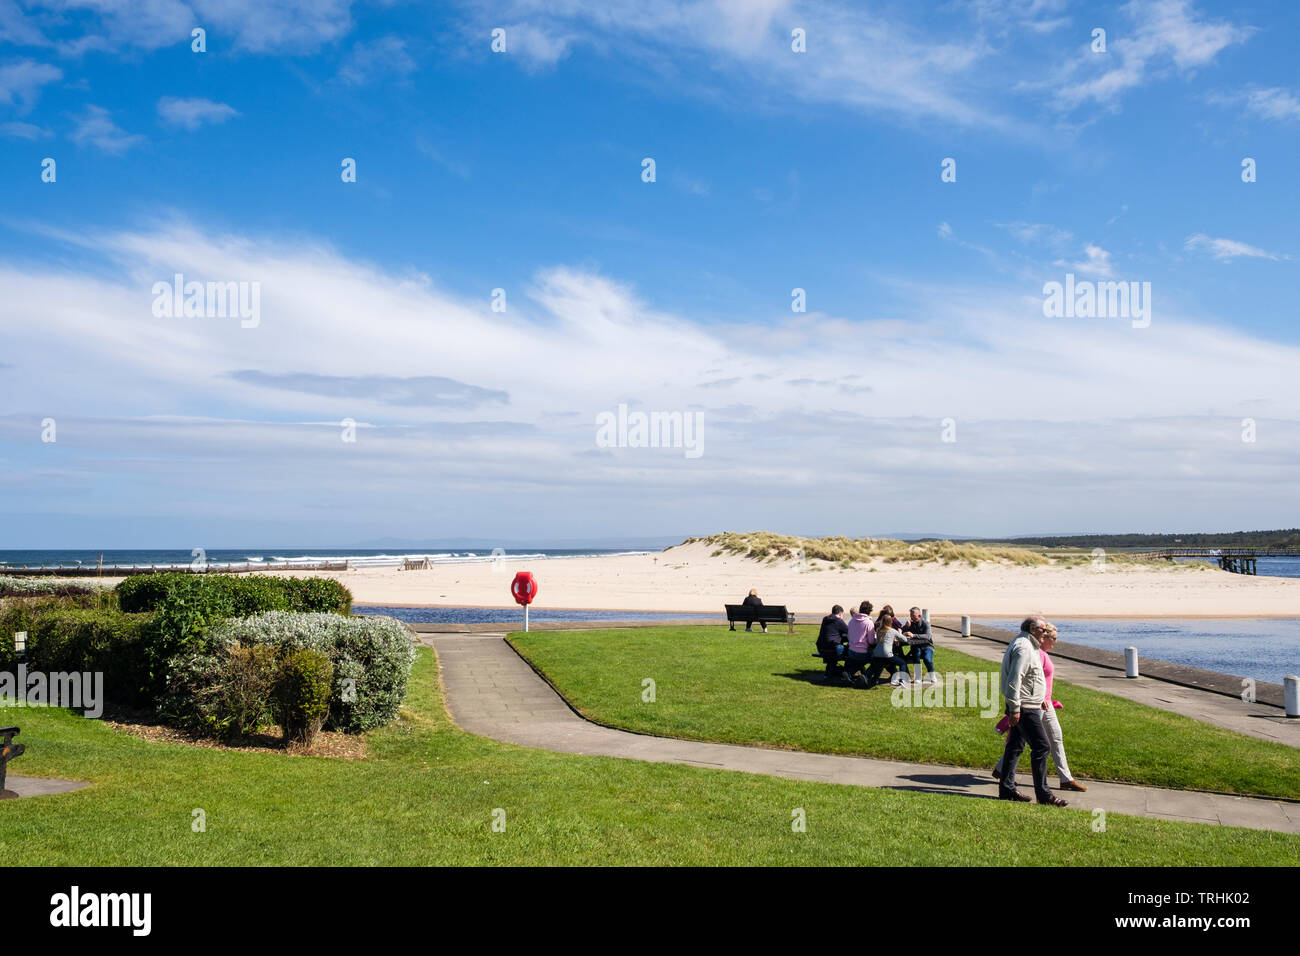 People walking on waterfront promenade beside Lossie River mouth with sandy east beach on Moray Firth coast. Lossiemouth Moray Scotland UK Britain - Stock Image